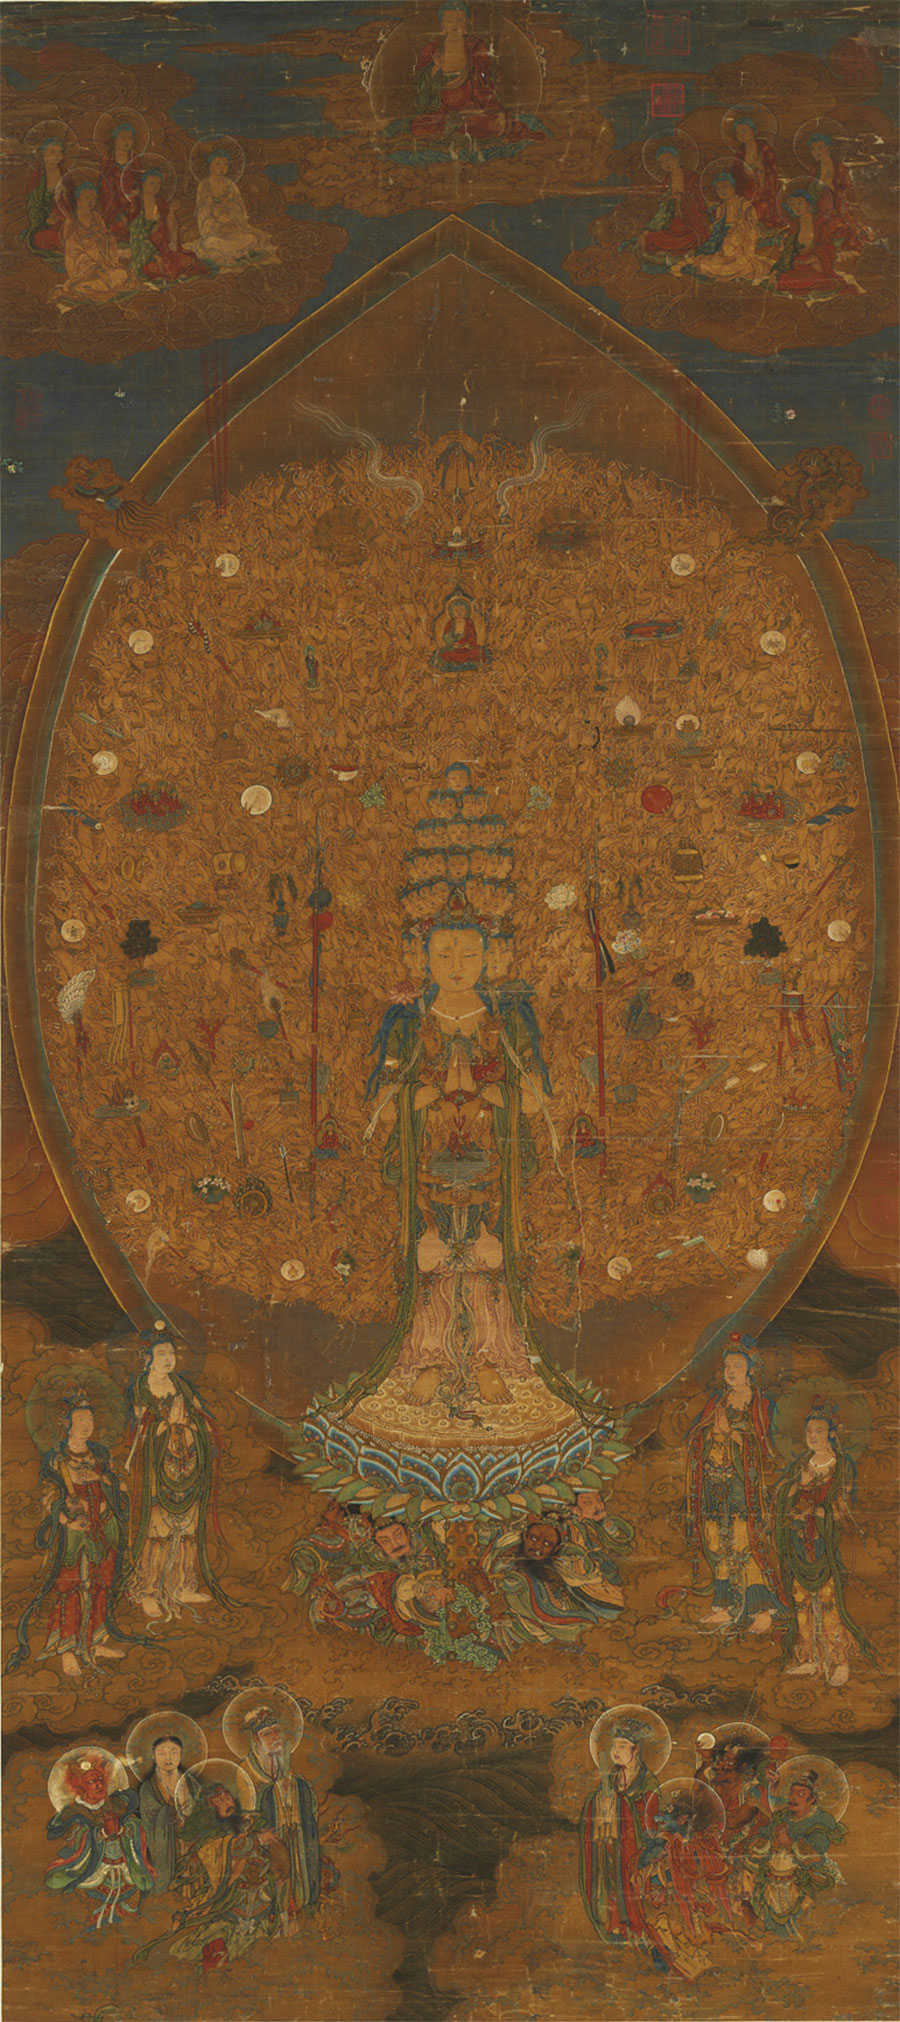 Kuan-yin of a Thousand Arms and Eyes